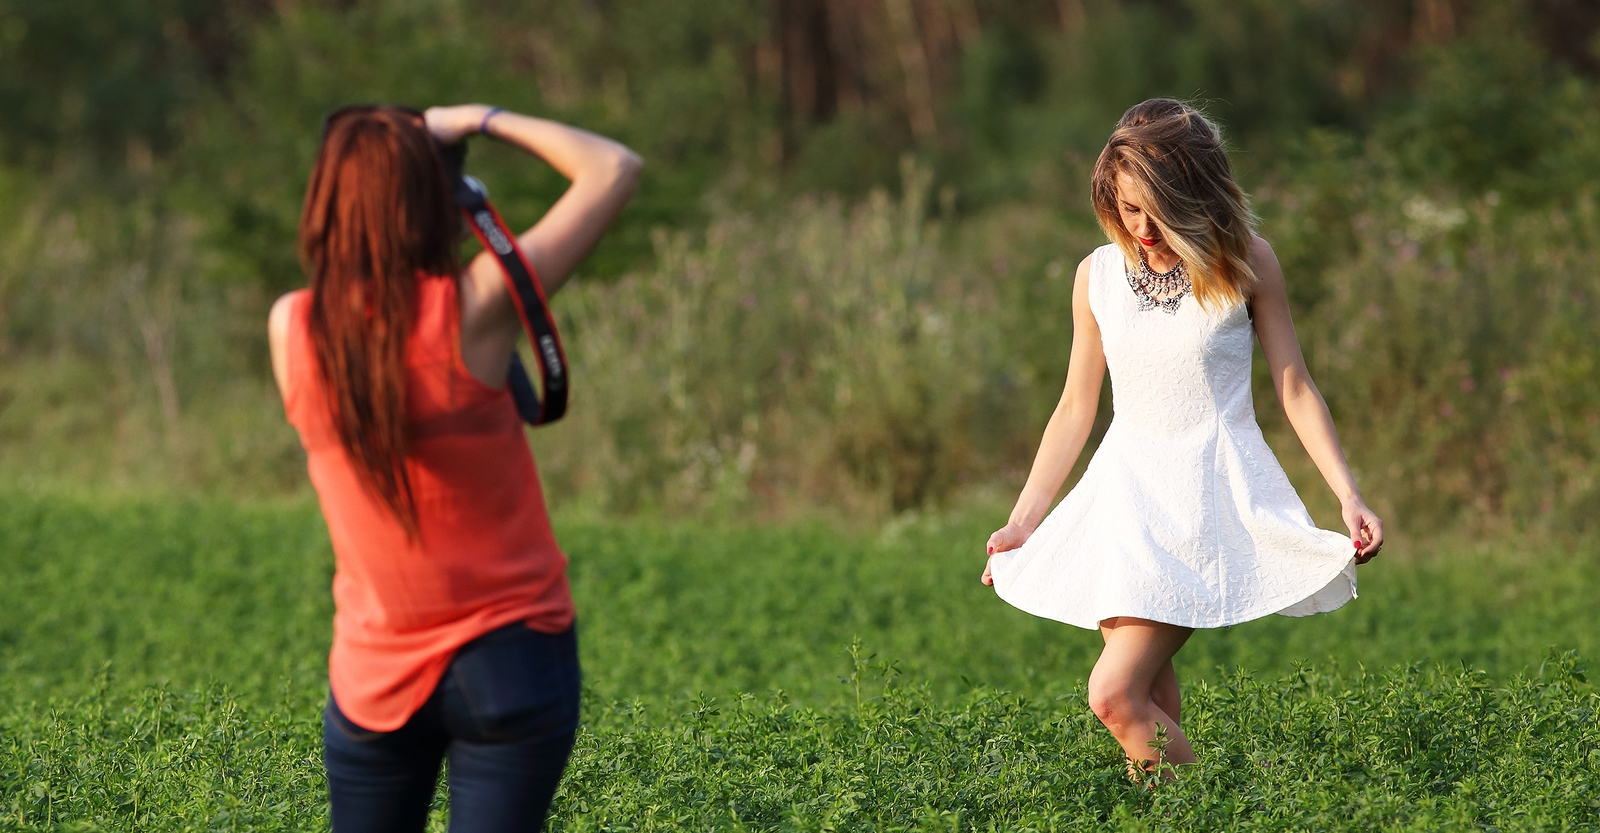 How To Get Gorgeous Light In Your Pictures Without A Flash Or Photography Assistants